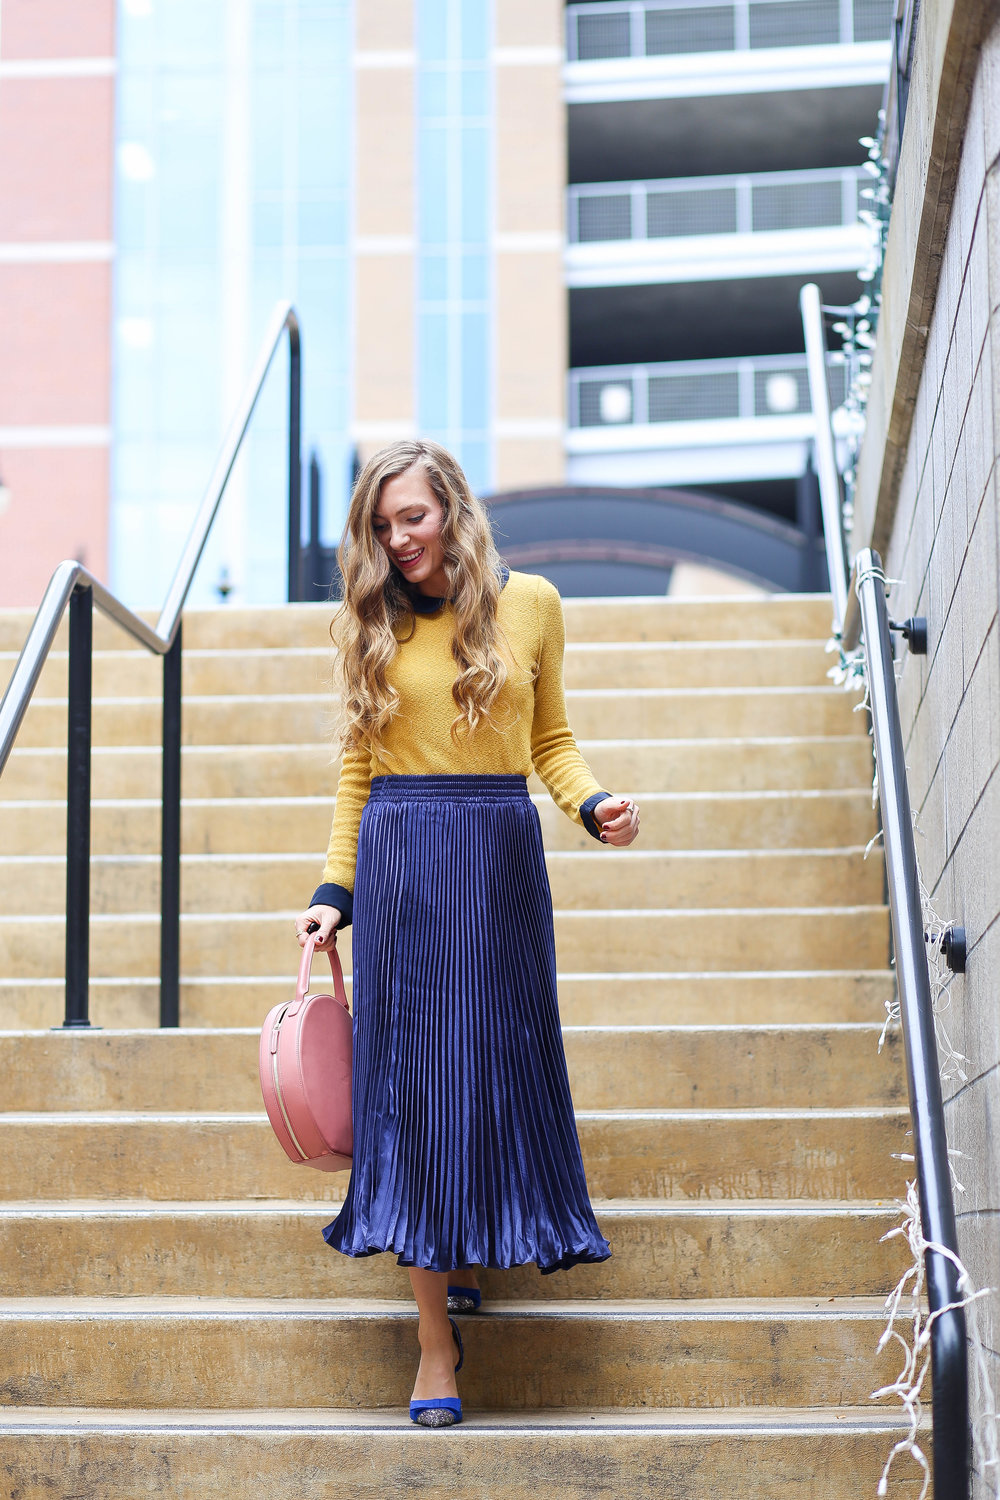 Mustard Top. Peter Pan Collar. Blue Pleated Skirt. Blush Circle Bag. Blue Heels.